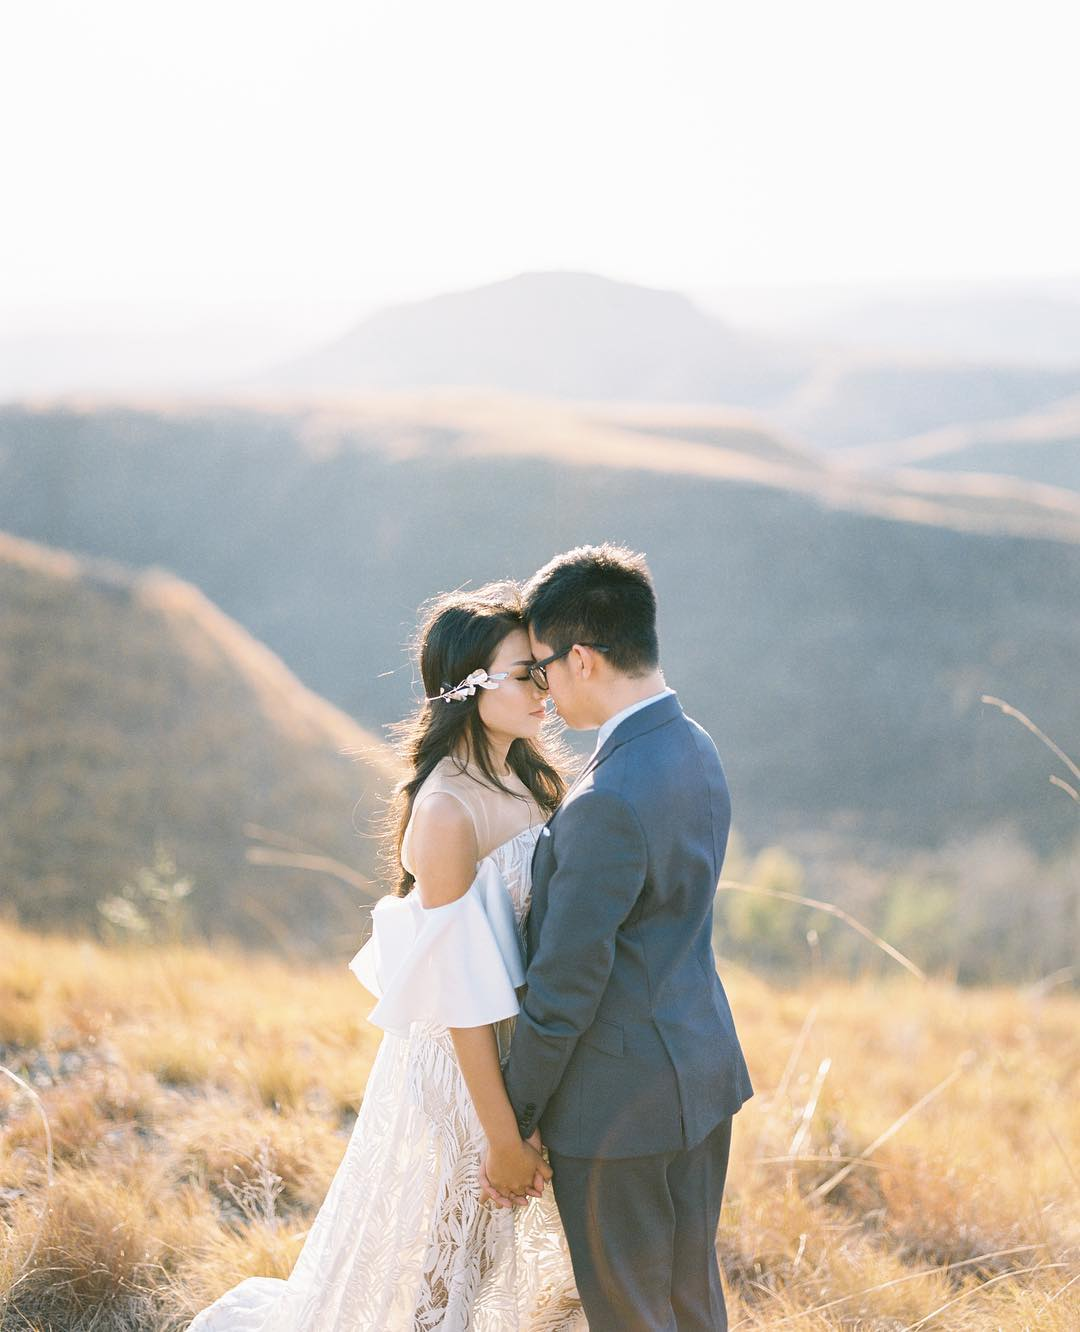 28751859 430448400717782 1974784816914104320 N : Being Different for Your Big Day by Enjoying The elements of Surprise With Analog Camera